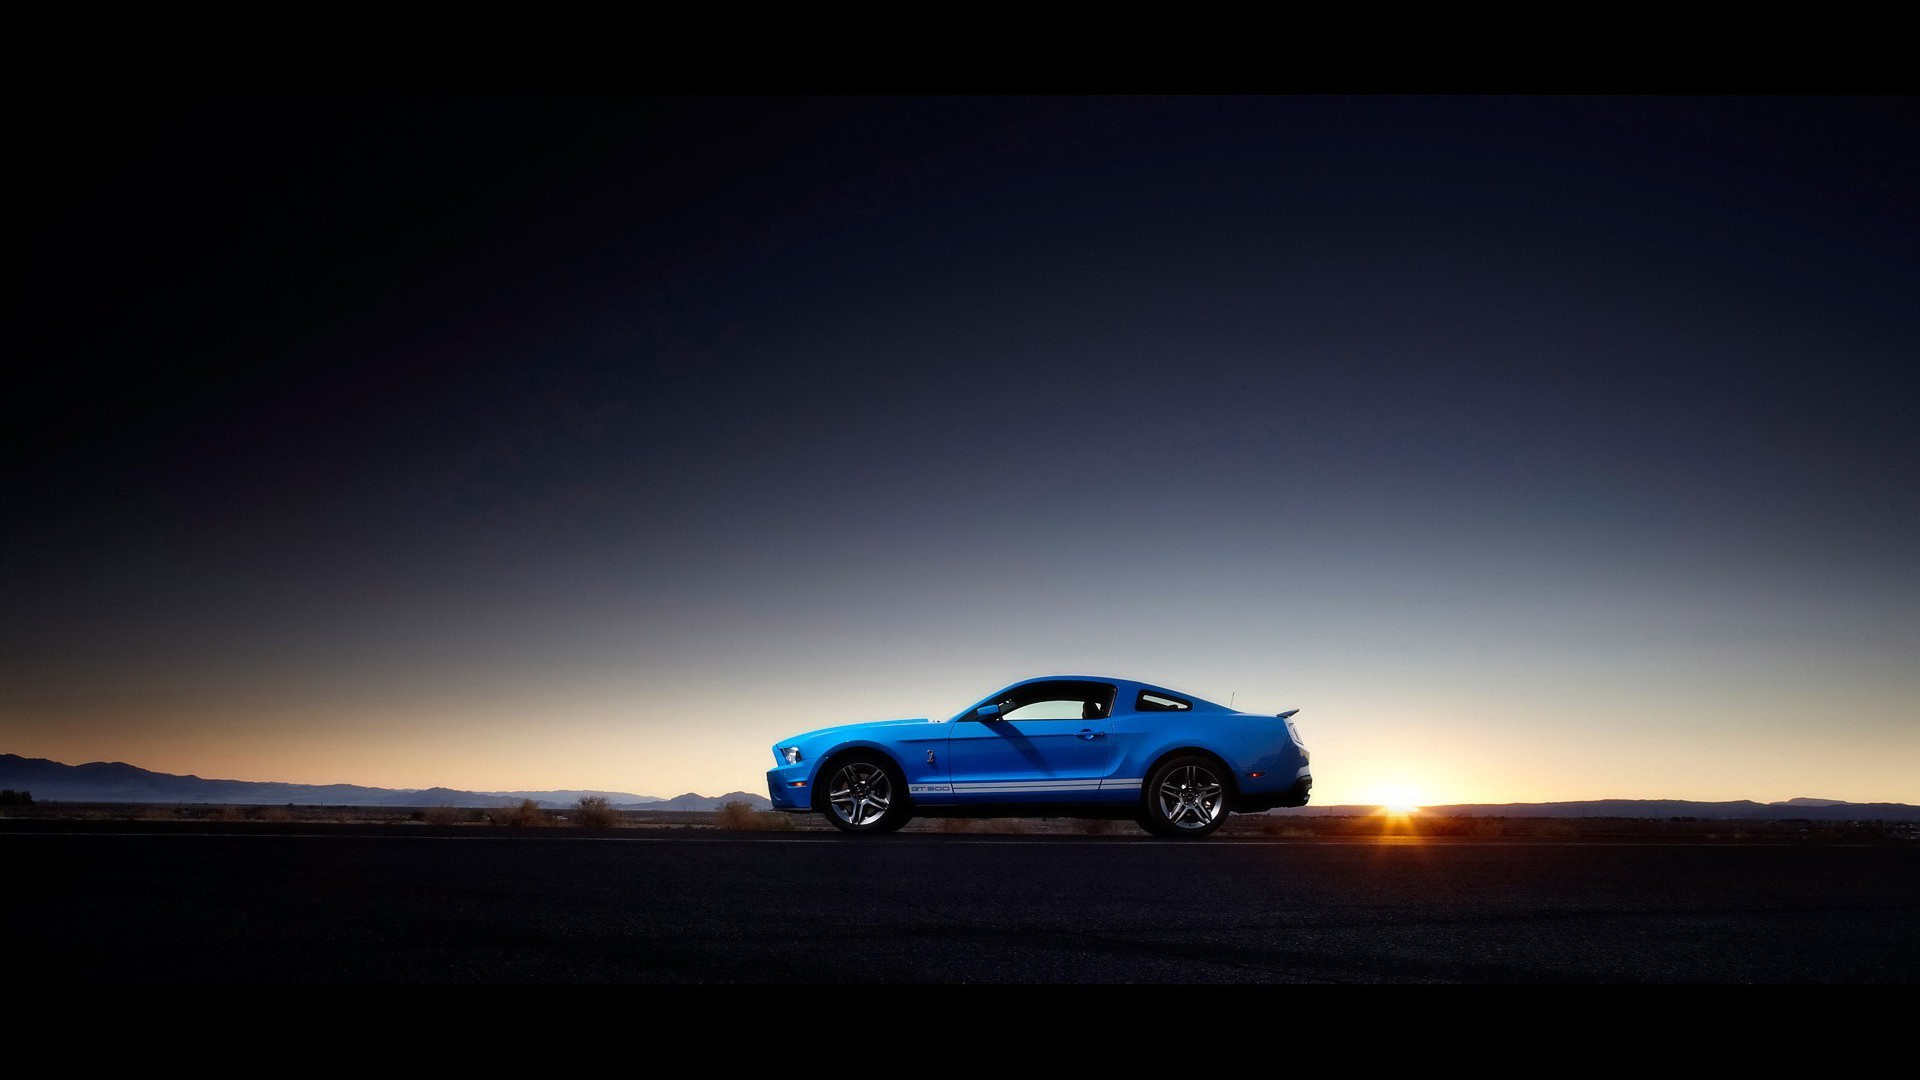 Muscle Car Iphone Wallpaper Ford Mustang Shelby Gt500 Muscle Cars Sunset Wallpaper